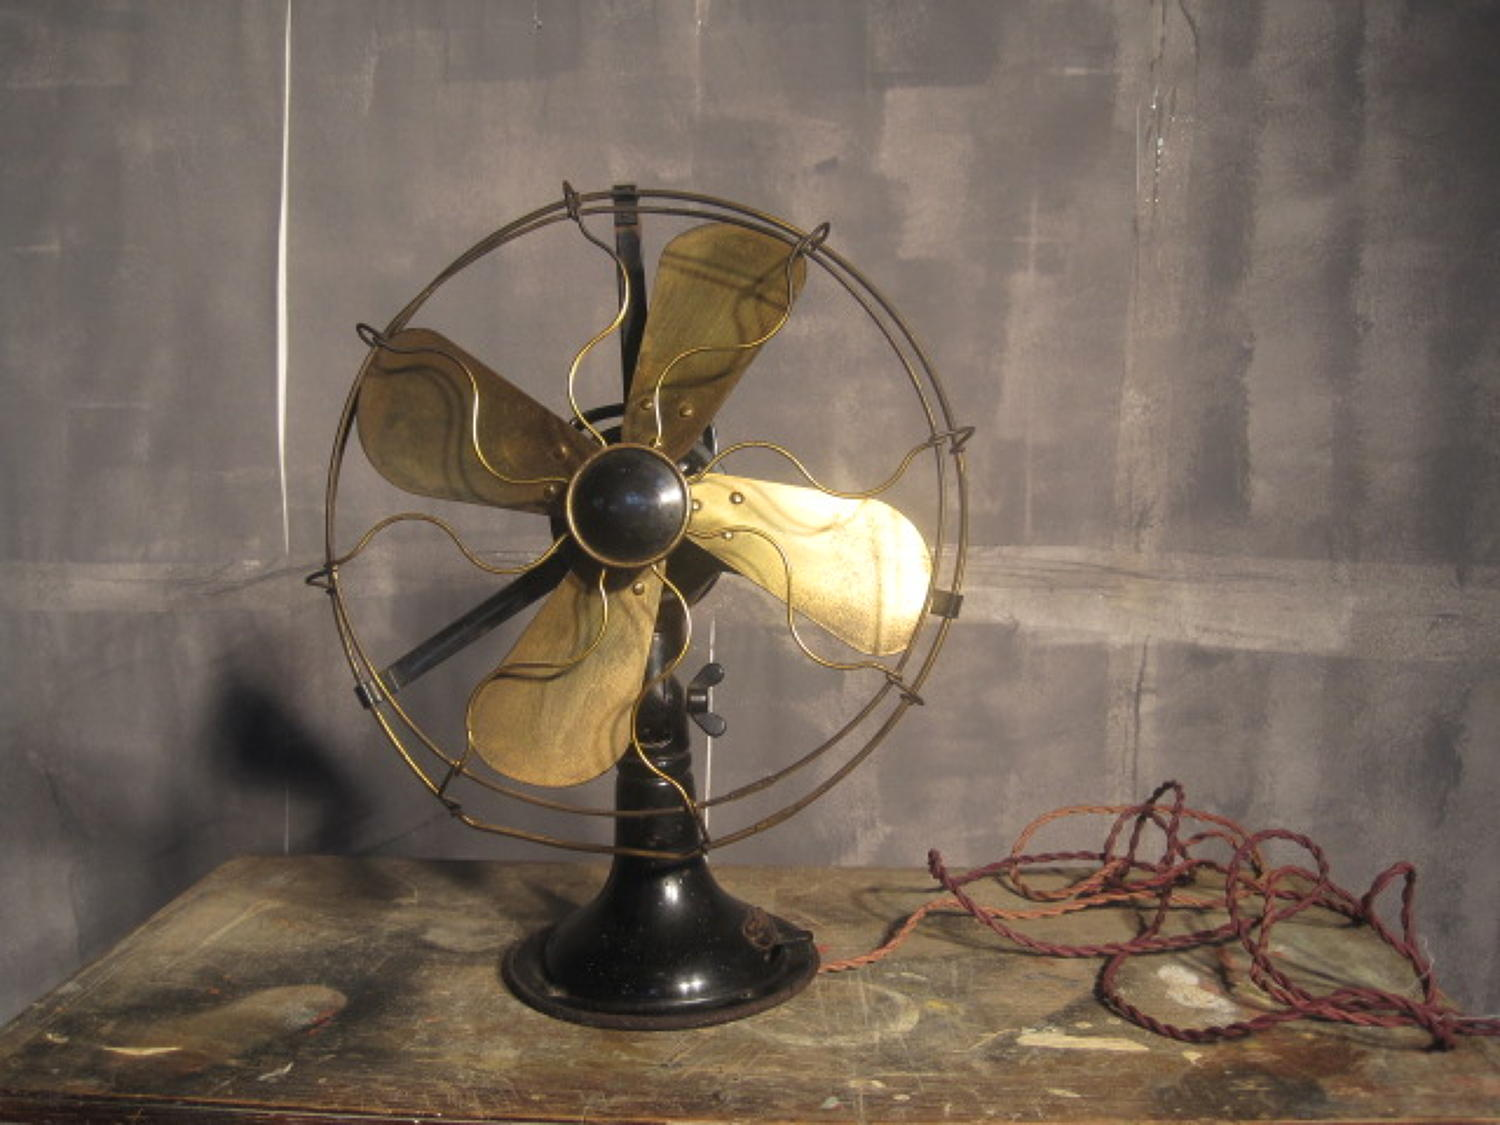 Peter Behrens table fan for AEG